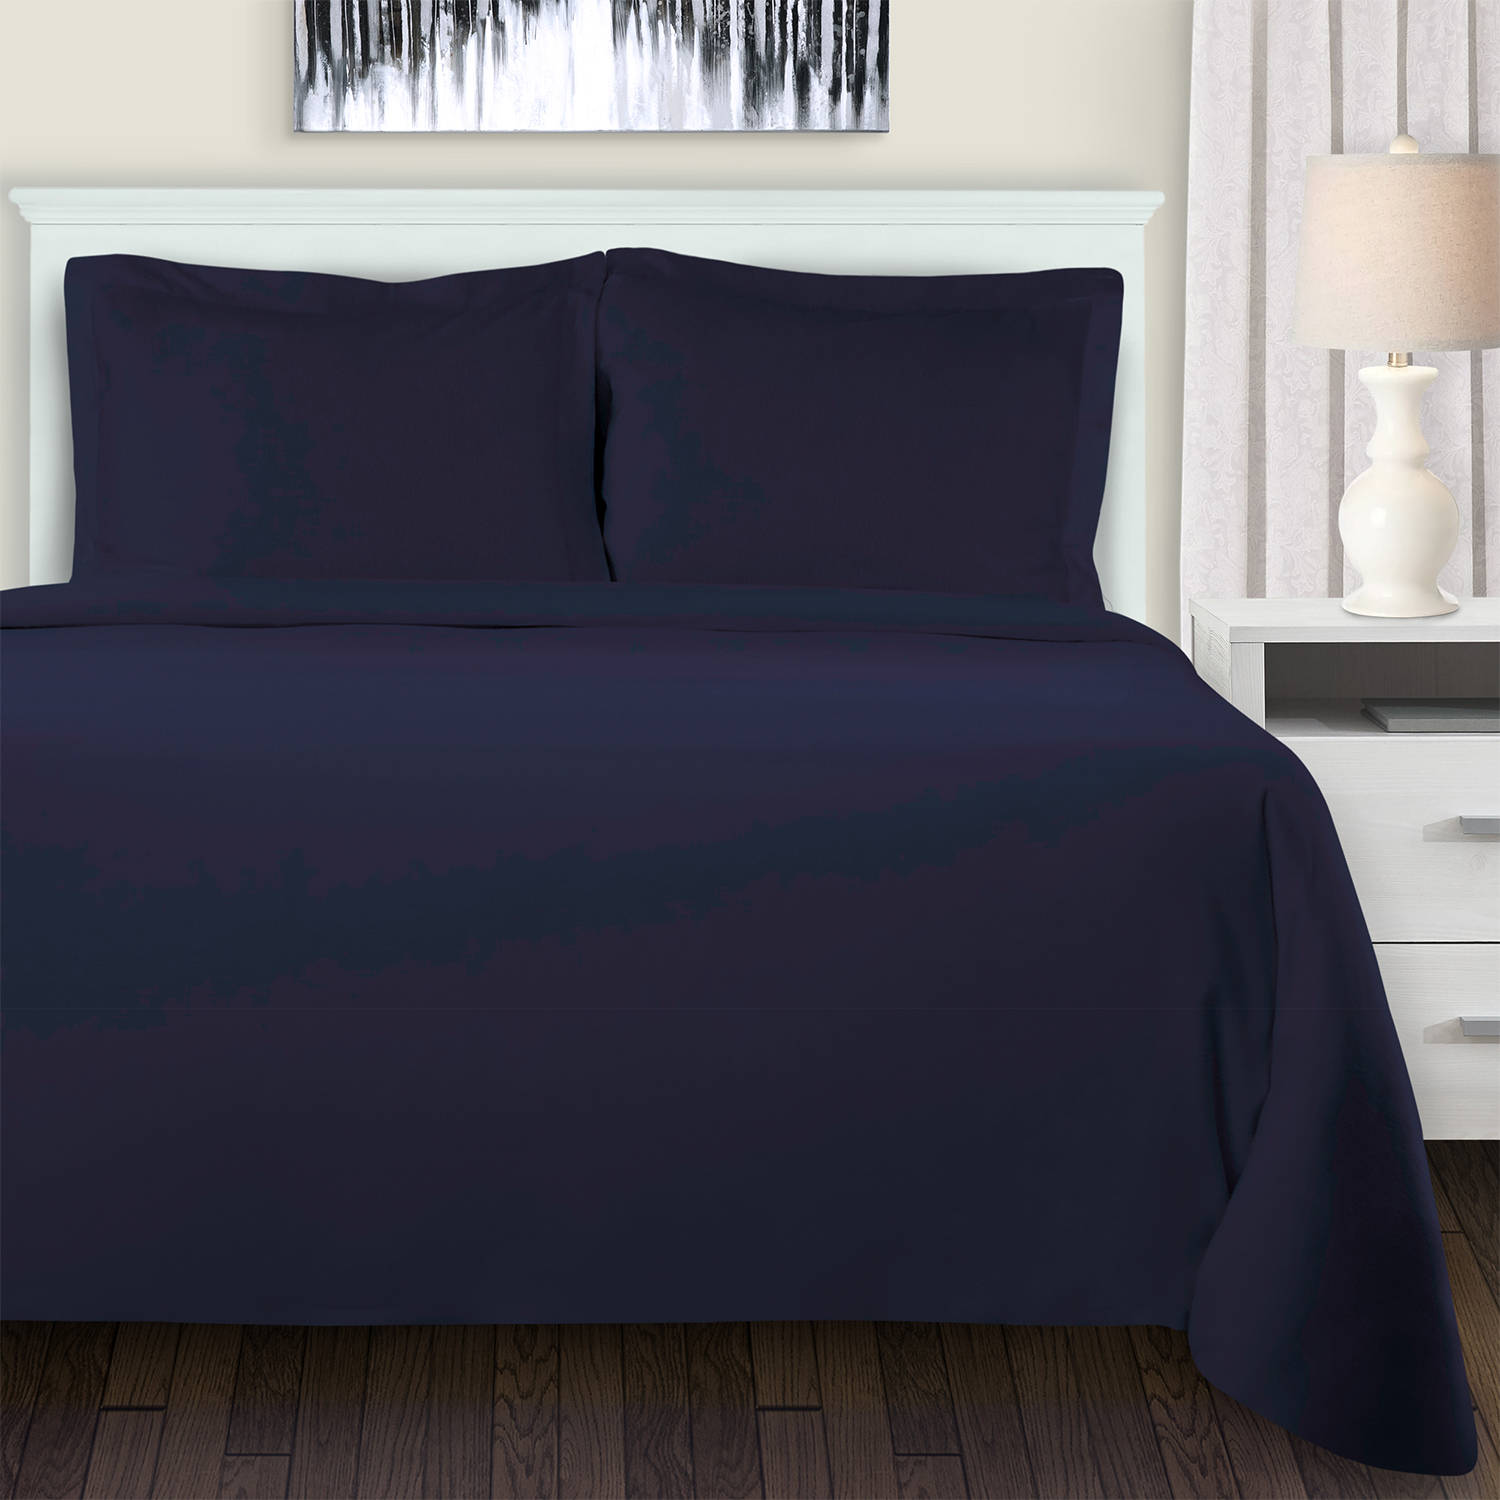 Extra Soft Reversible Duvet Cover Set